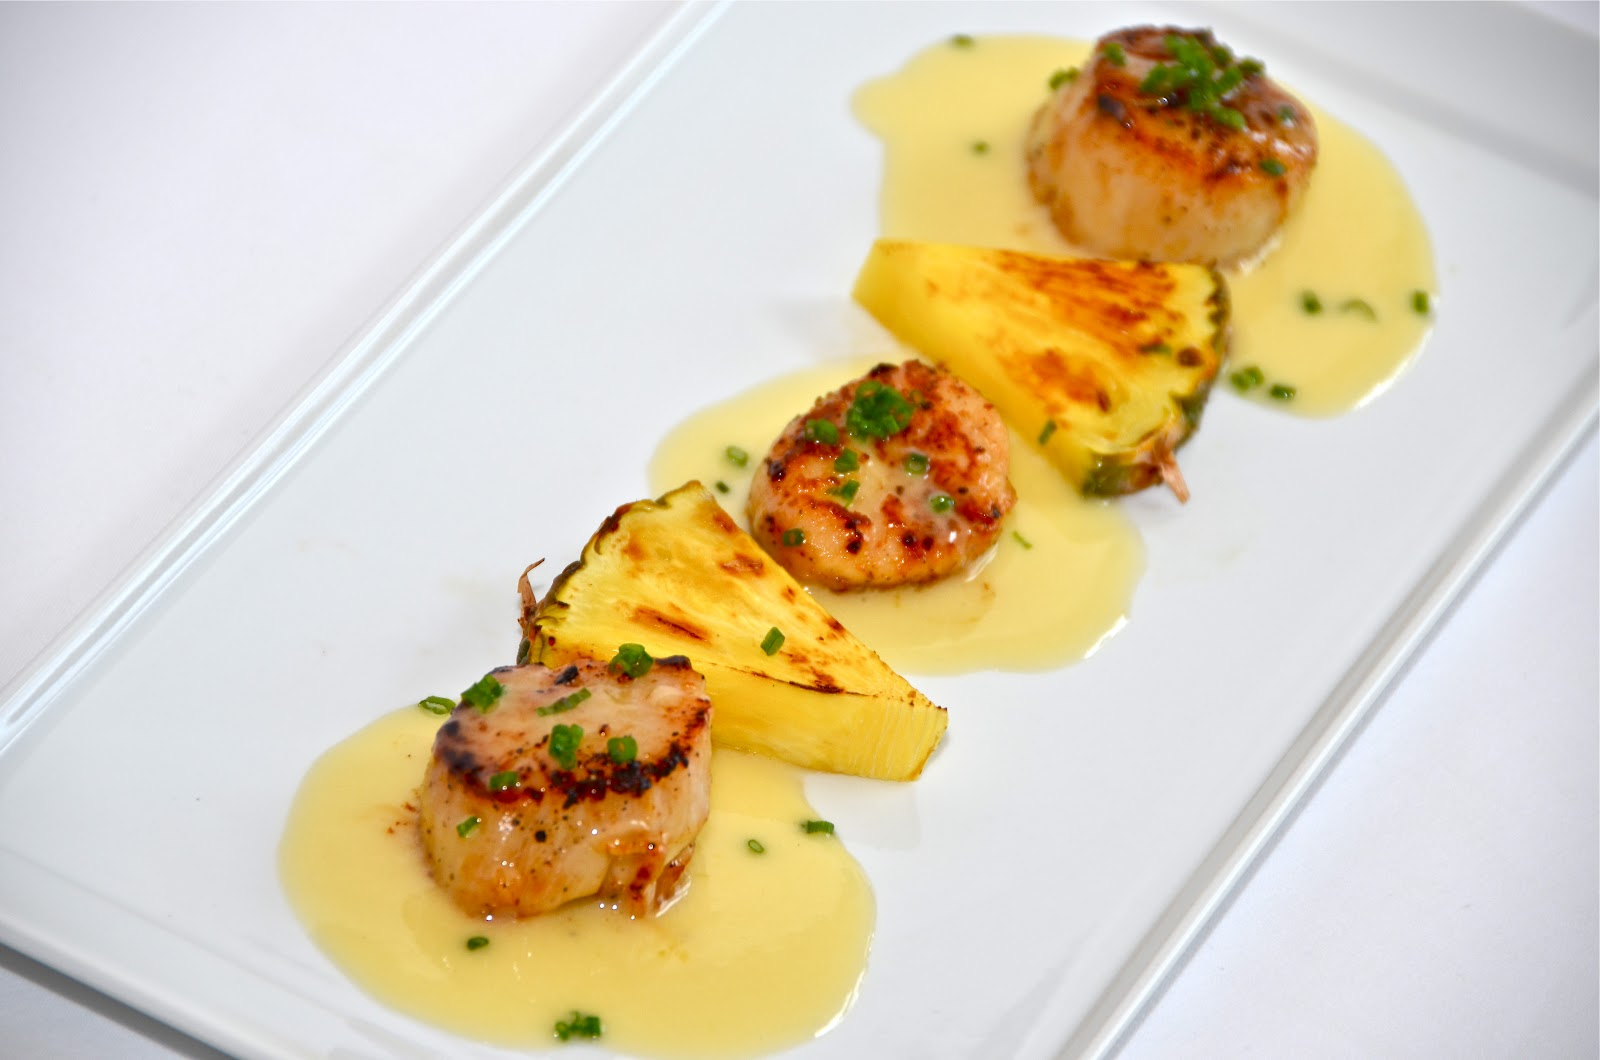 Seared scallops with pineapple beurre blanc sauce delights of